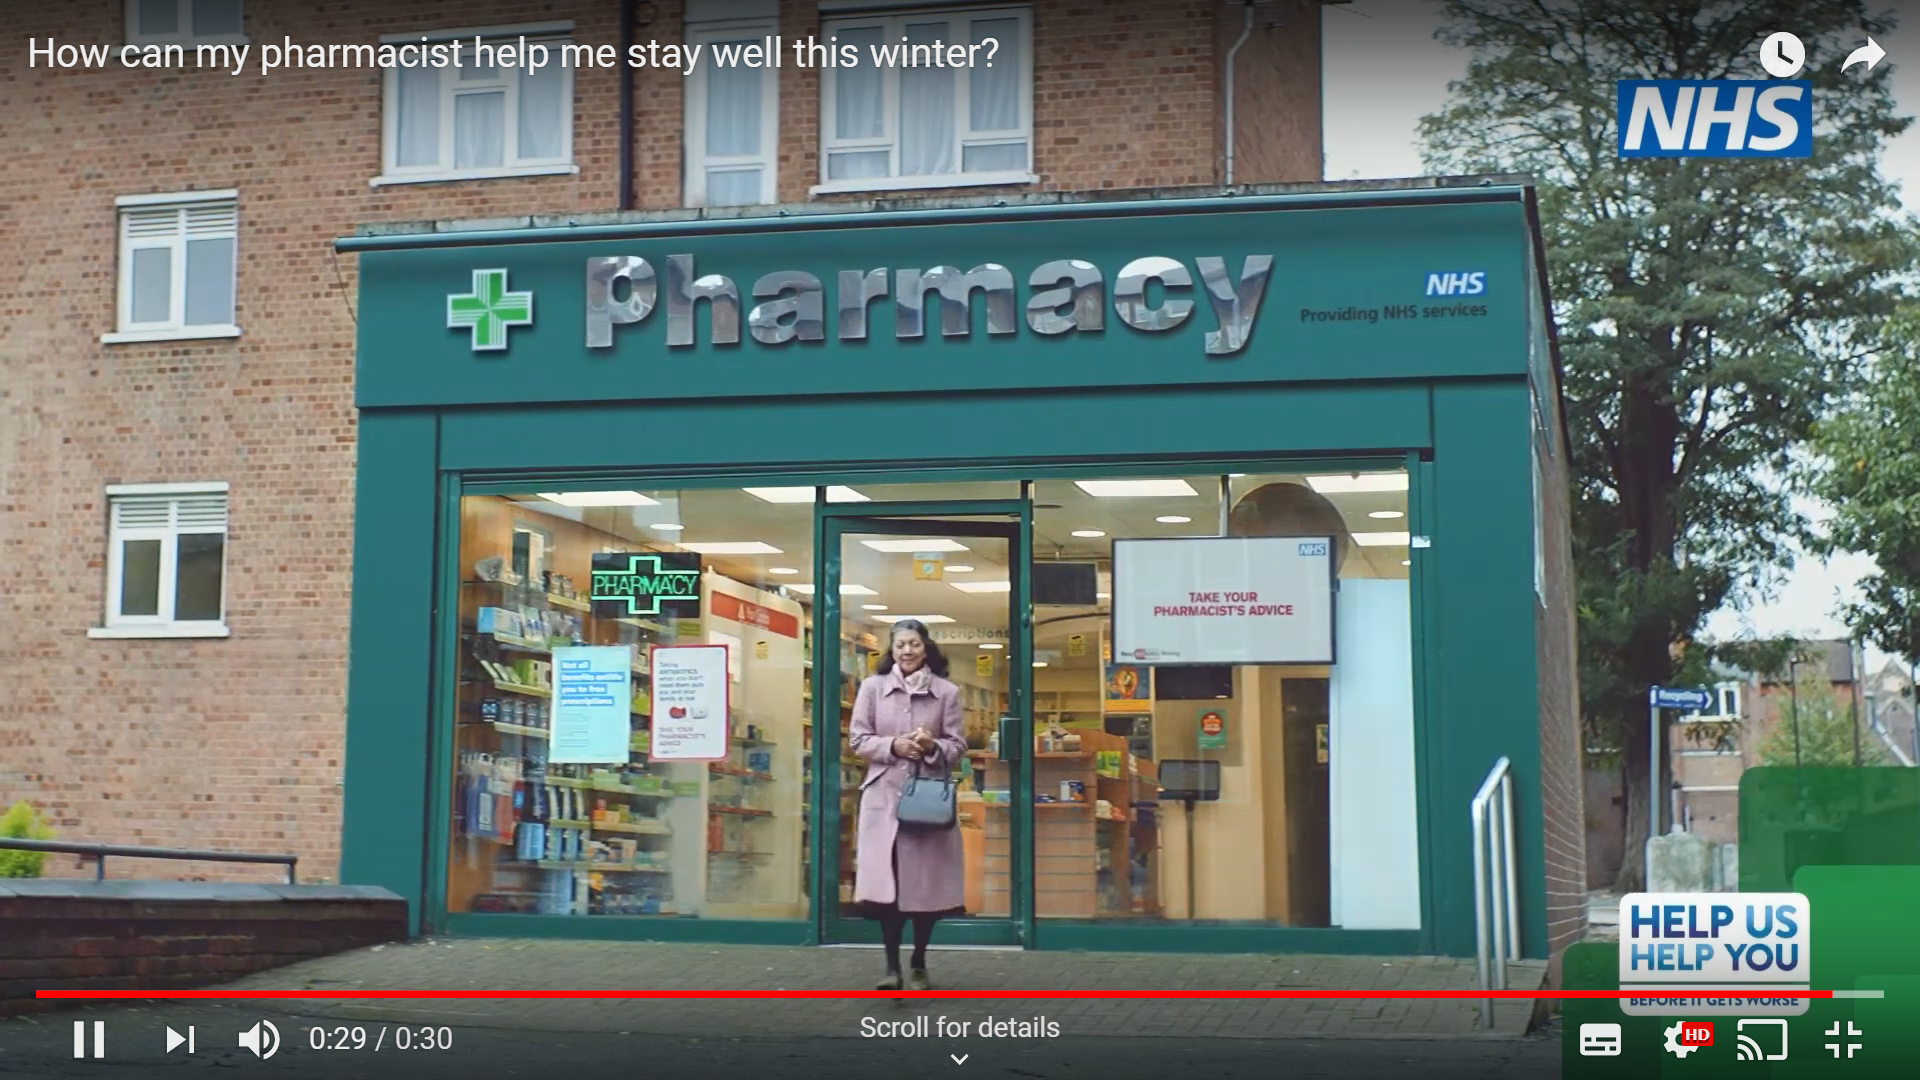 Help us help you pharmacy